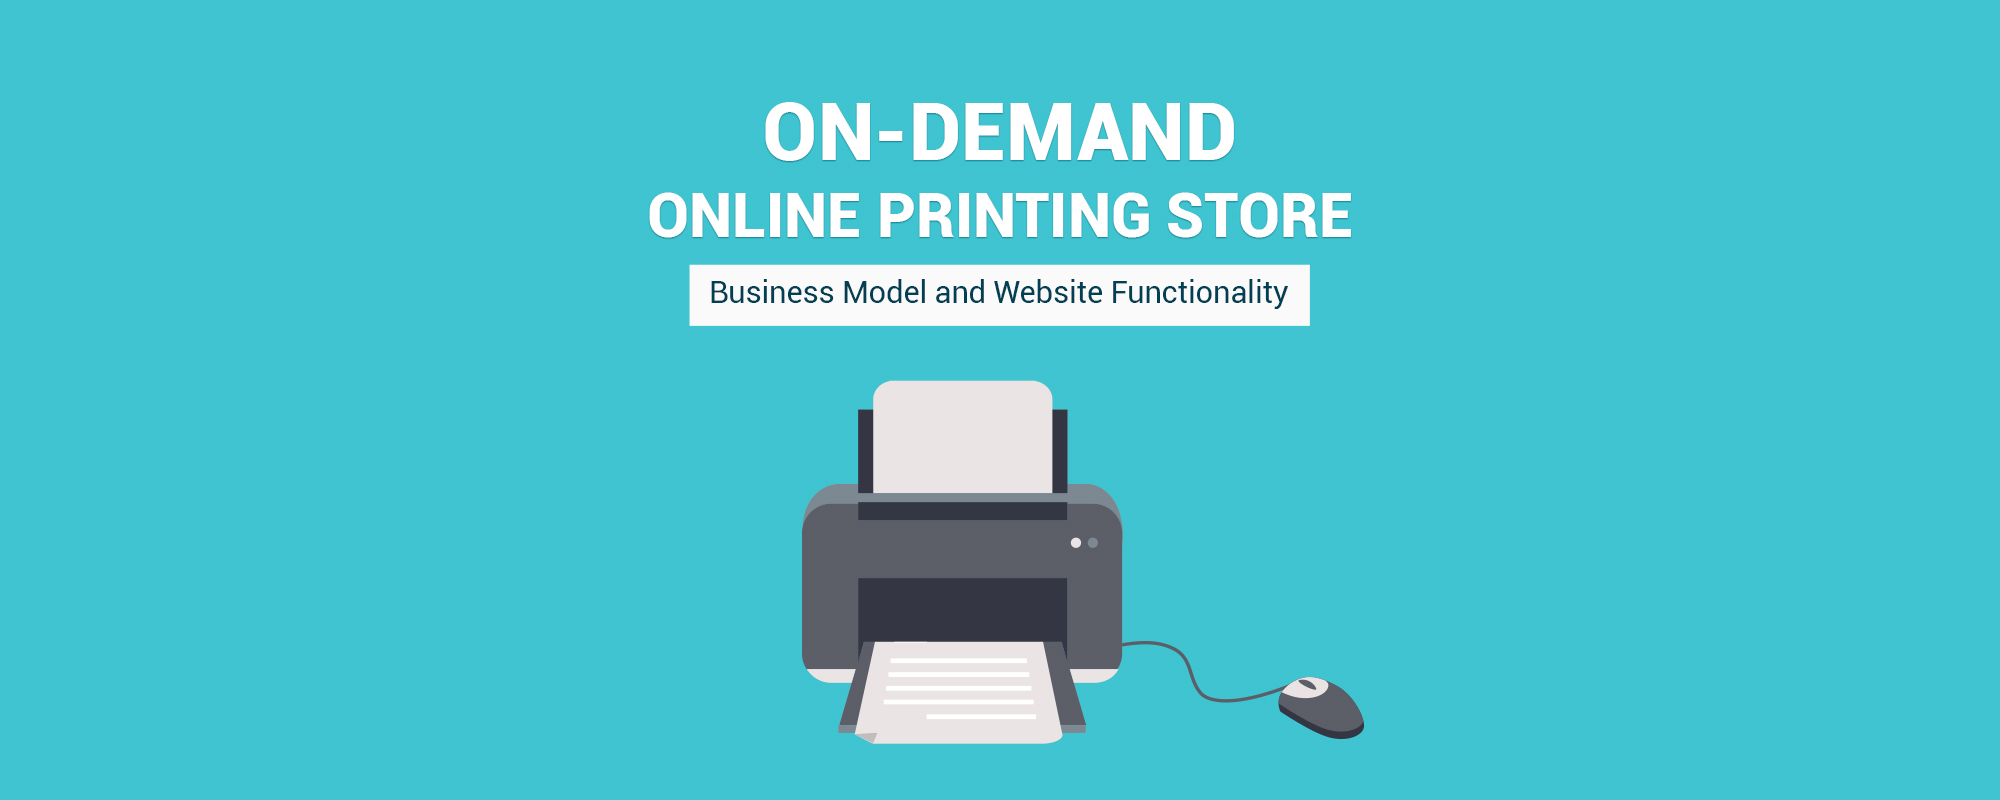 Business Model & Website Functionality To Create Advanced Online Printing Store